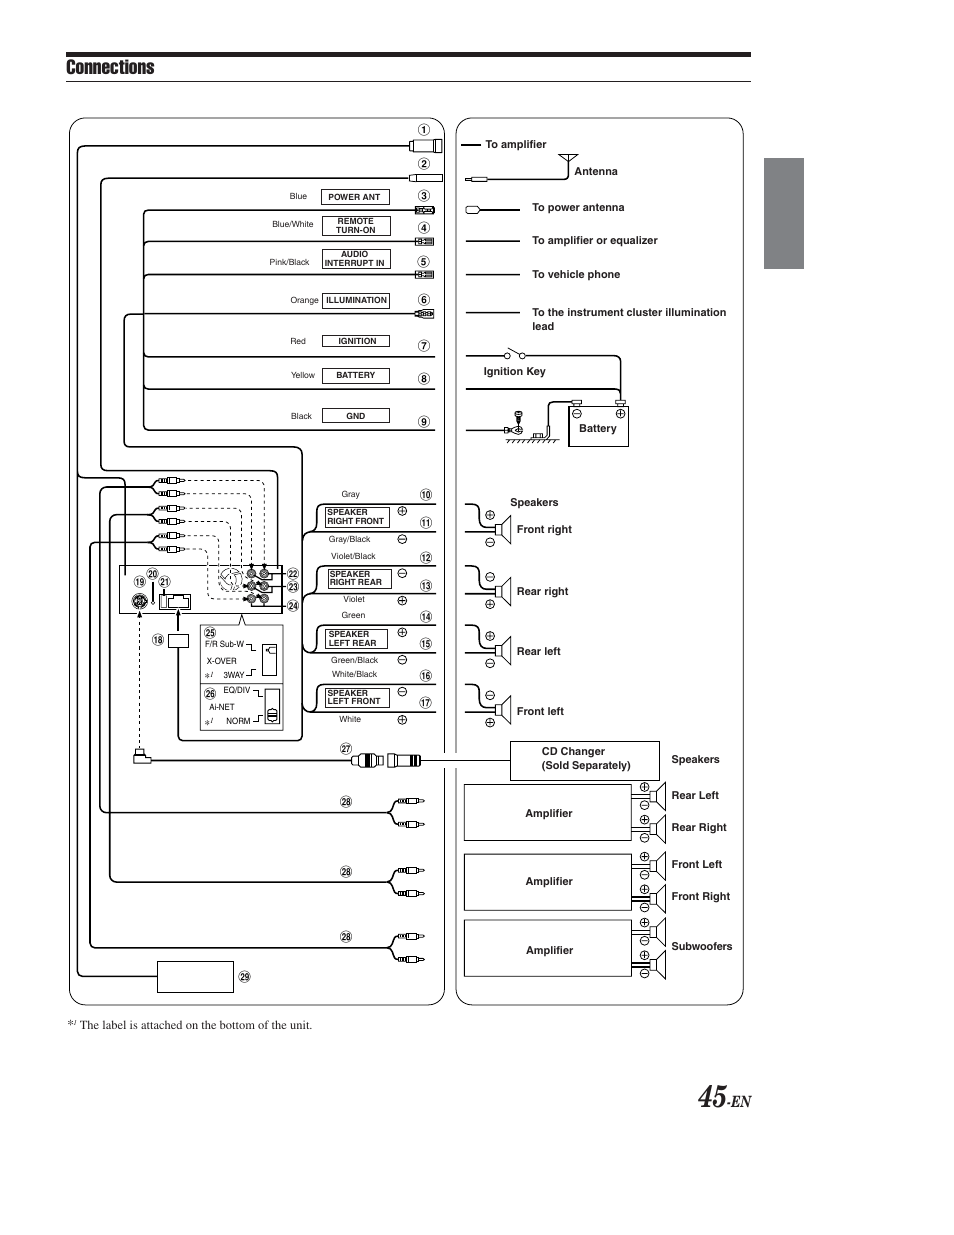 hight resolution of wiring connections alpine cda 9853 user manual page 46 55 mix alpine cda wiring diagram